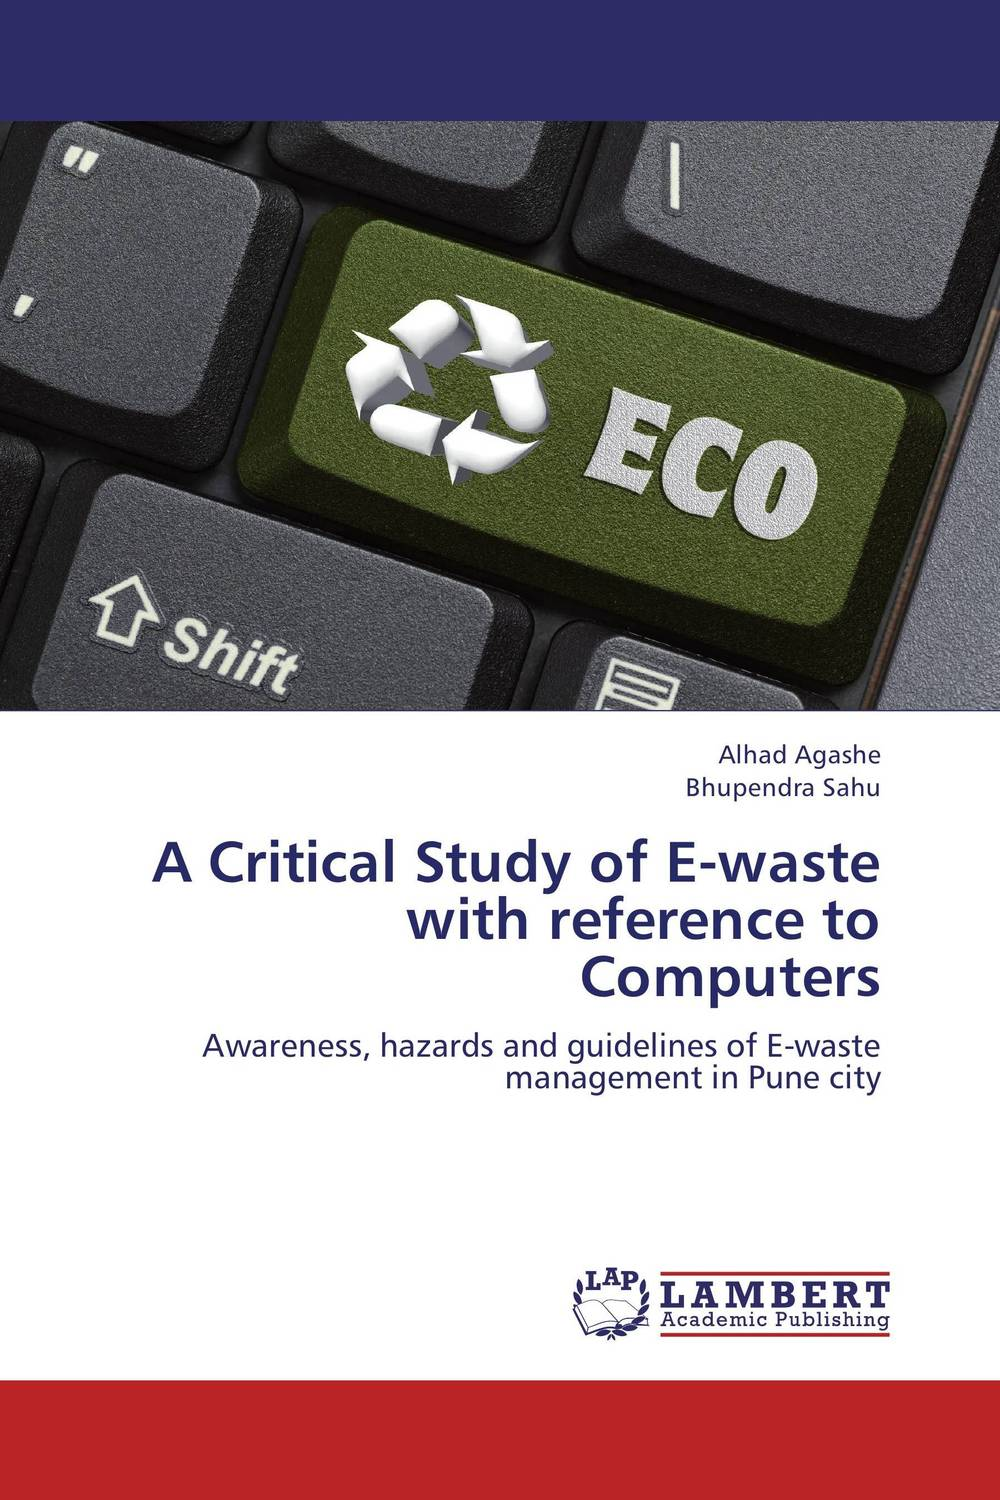 A Critical Study of E-waste with reference to Computers biodegradation of coffee pulp waste by white rotters